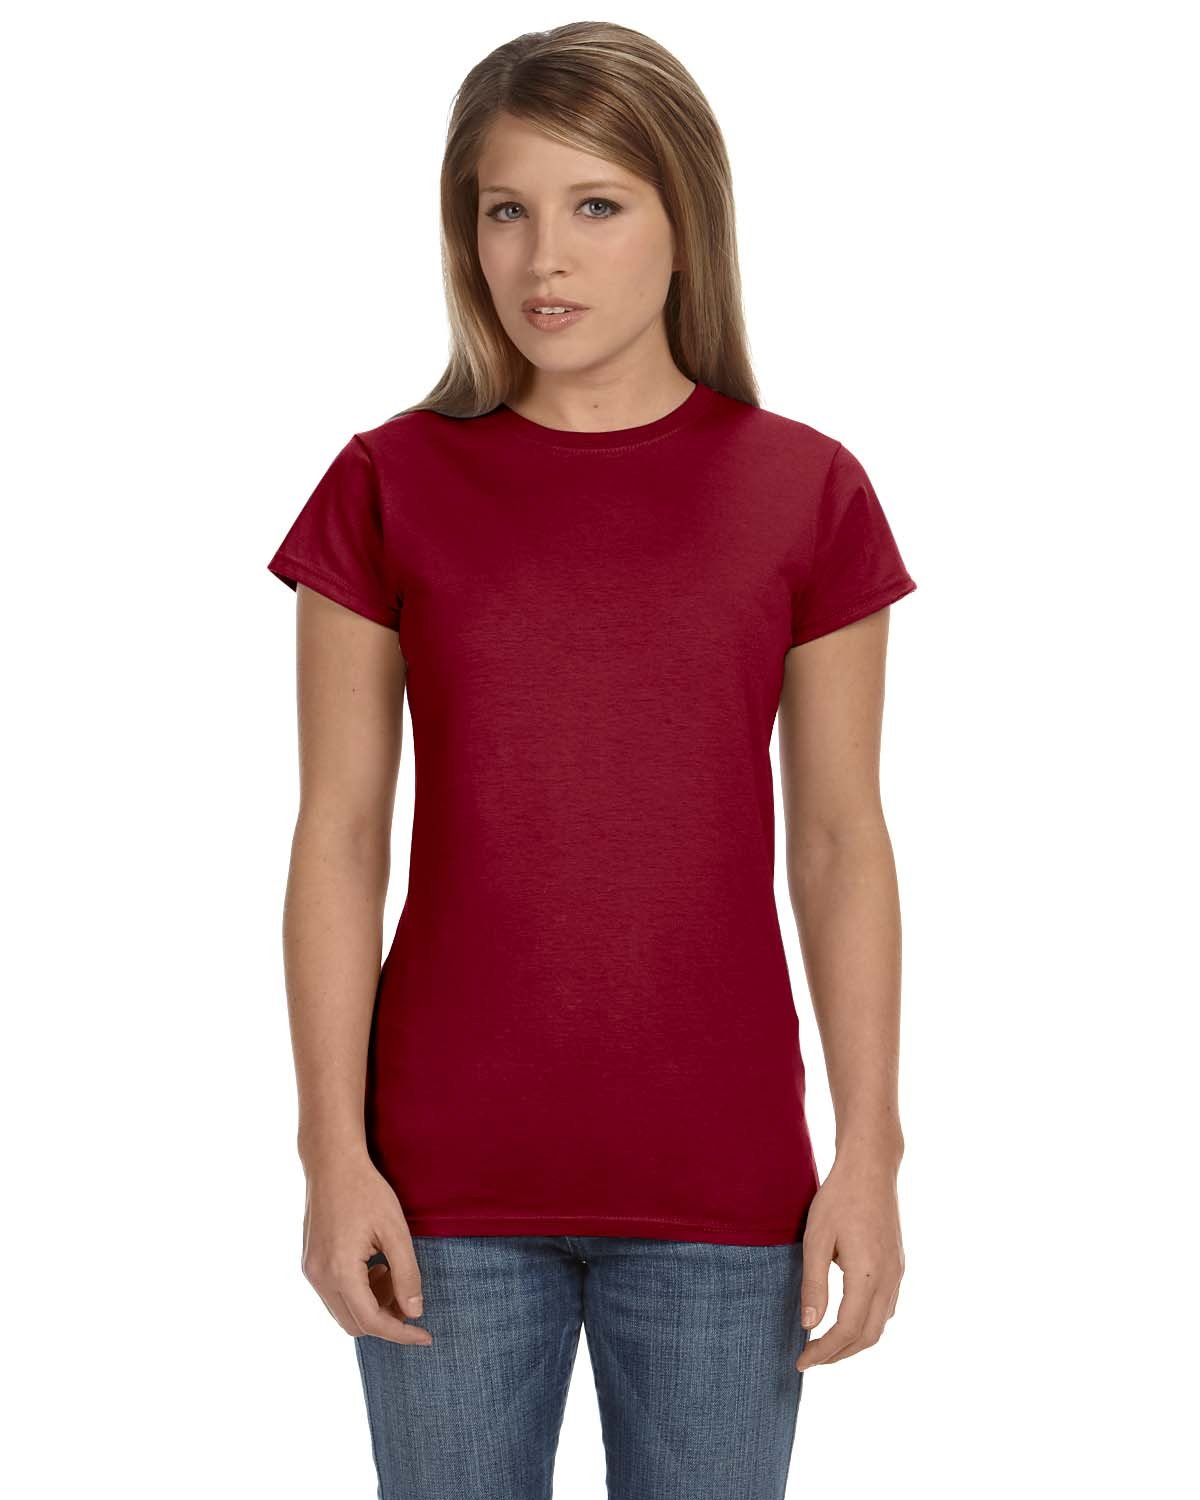 Gildan Ladies' Softstyle® 4.5 oz Fitted T-Shirt ANTIQ CHERRY RED